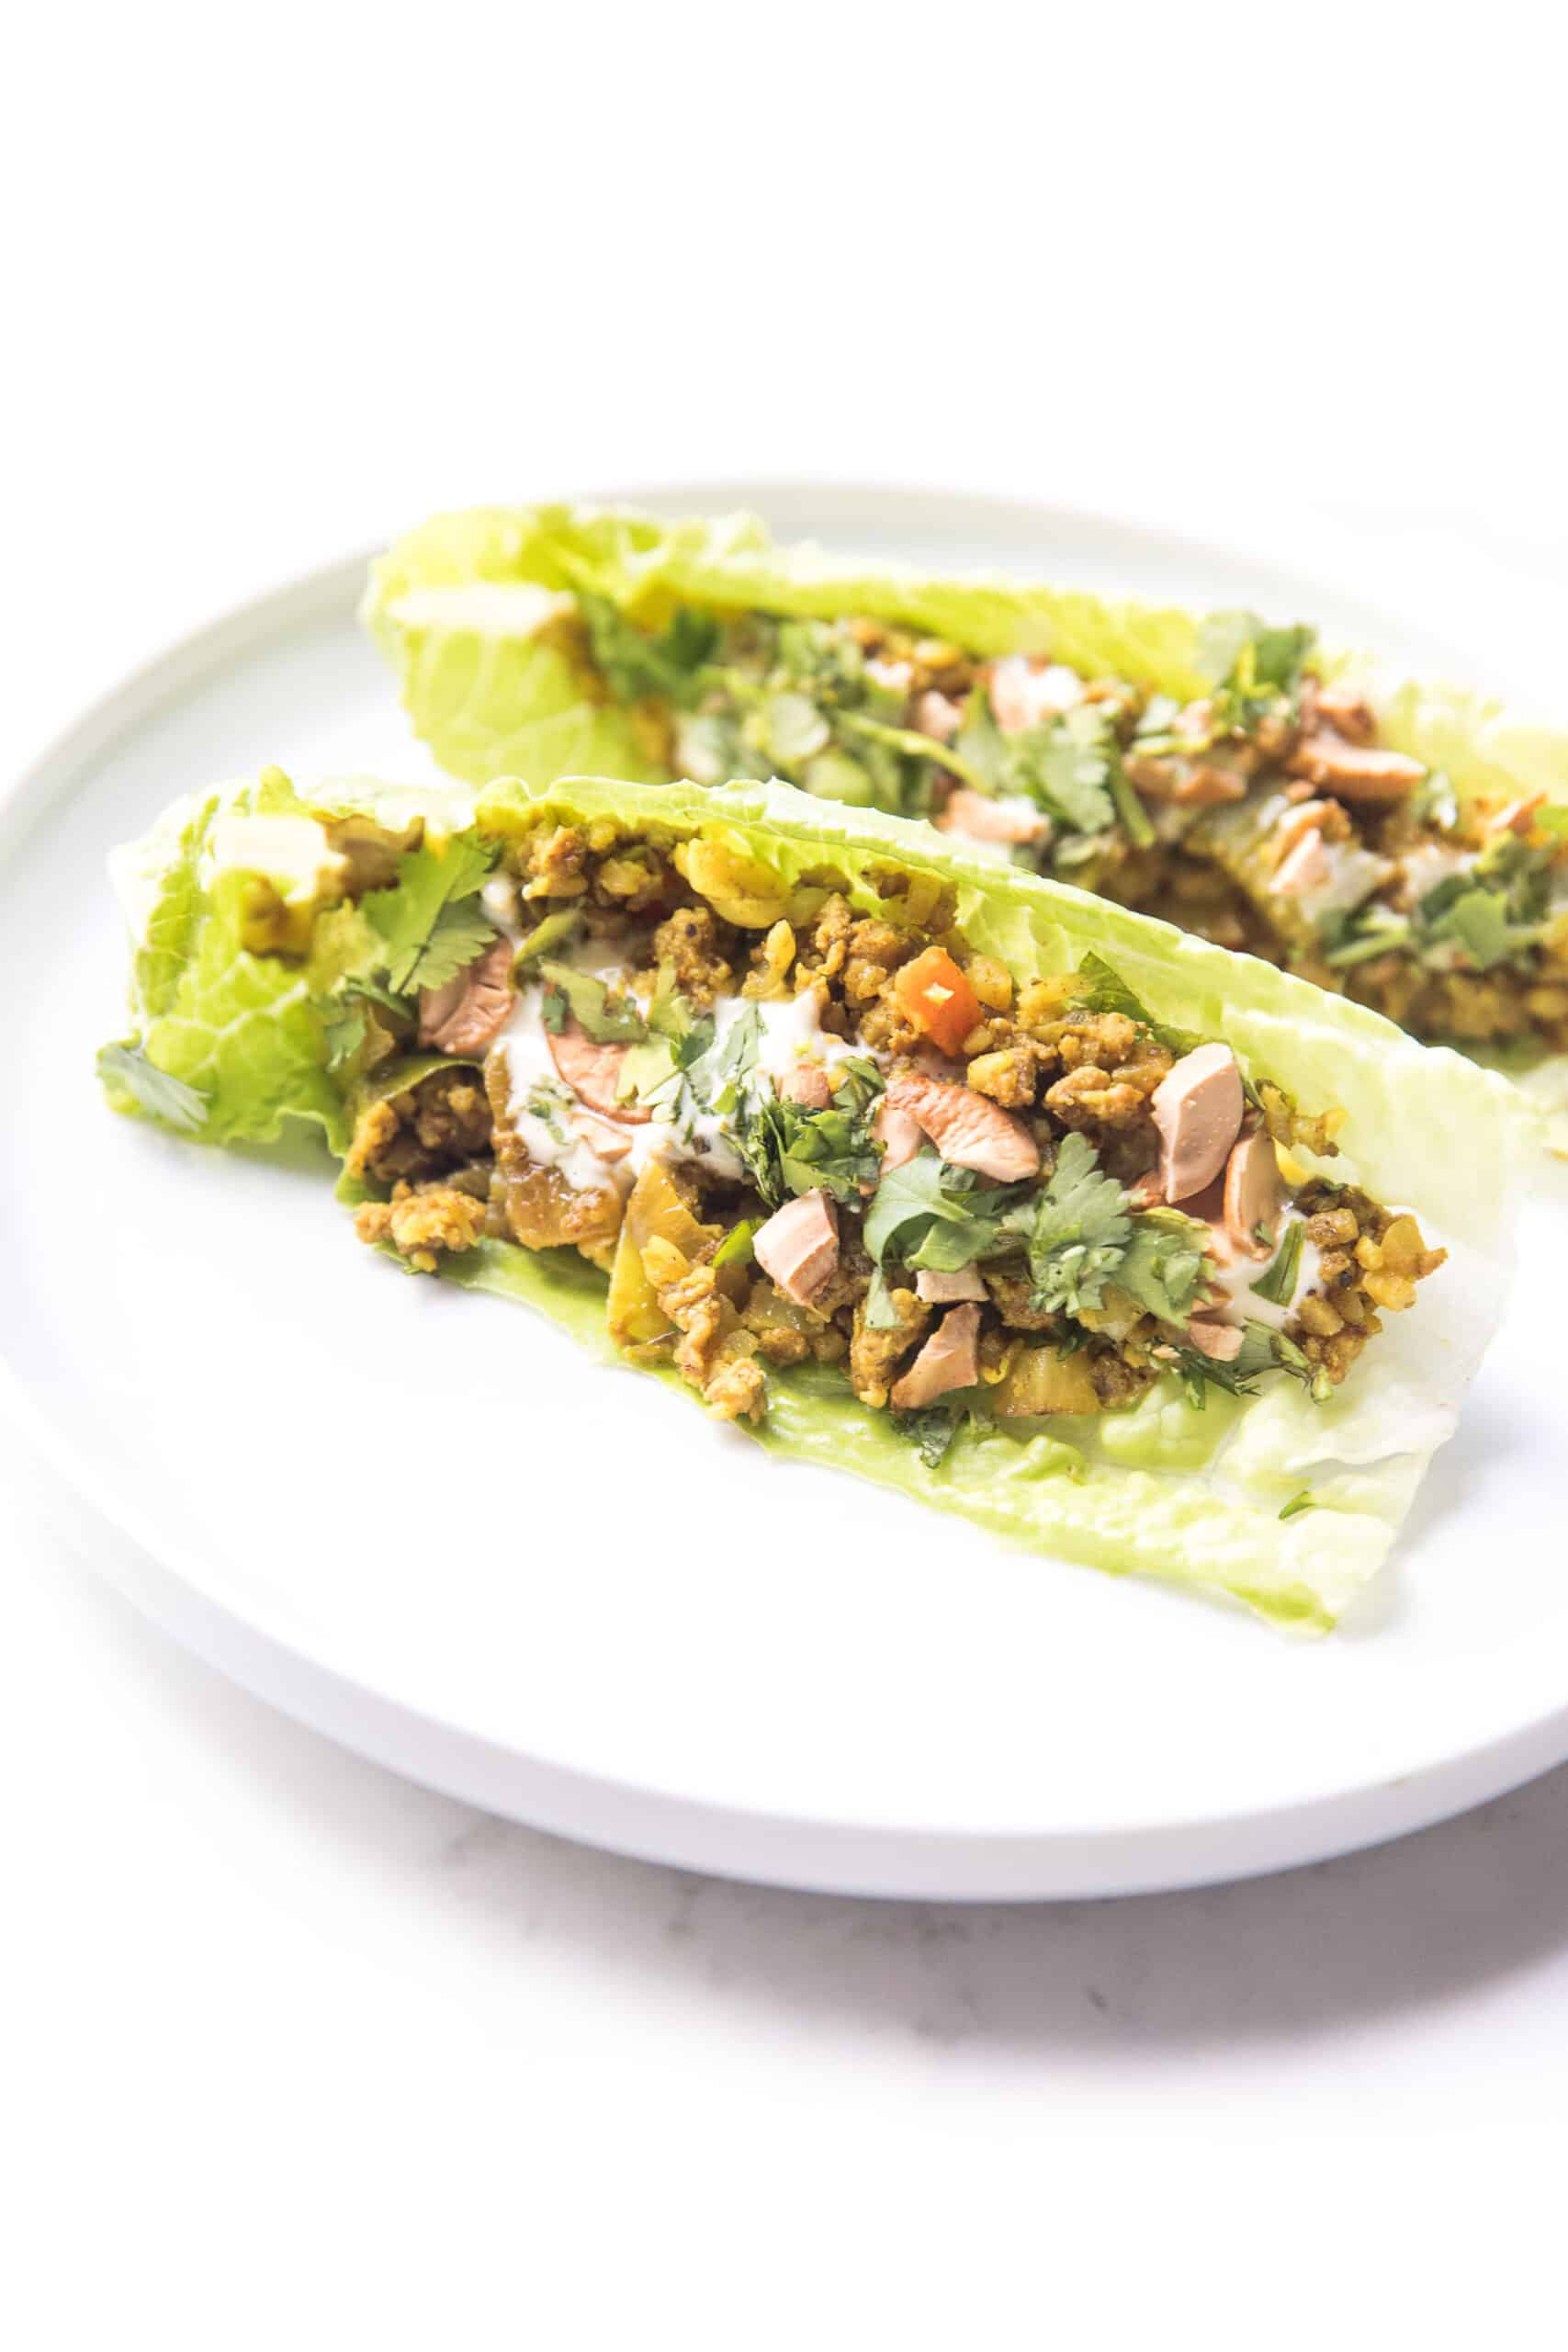 Curry lettuce wraps with cashews and cilantro on a white plate